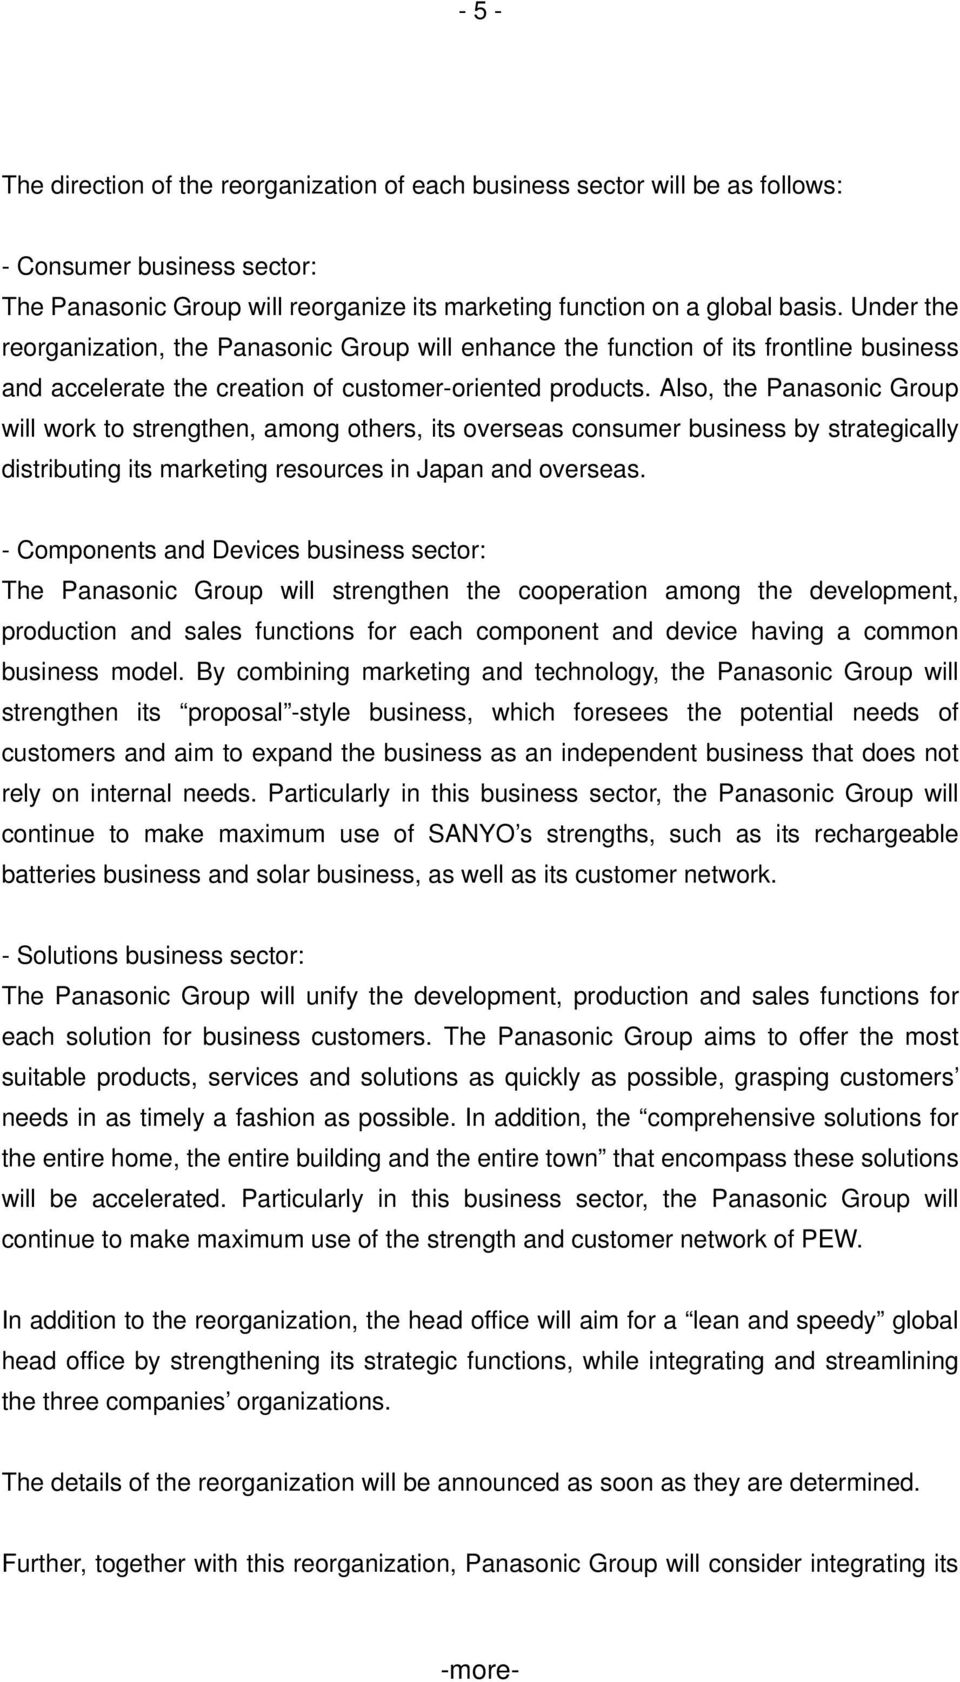 Also, the Panasonic Group will work to strengthen, among others, its overseas consumer business by strategically distributing its marketing resources in Japan and overseas.